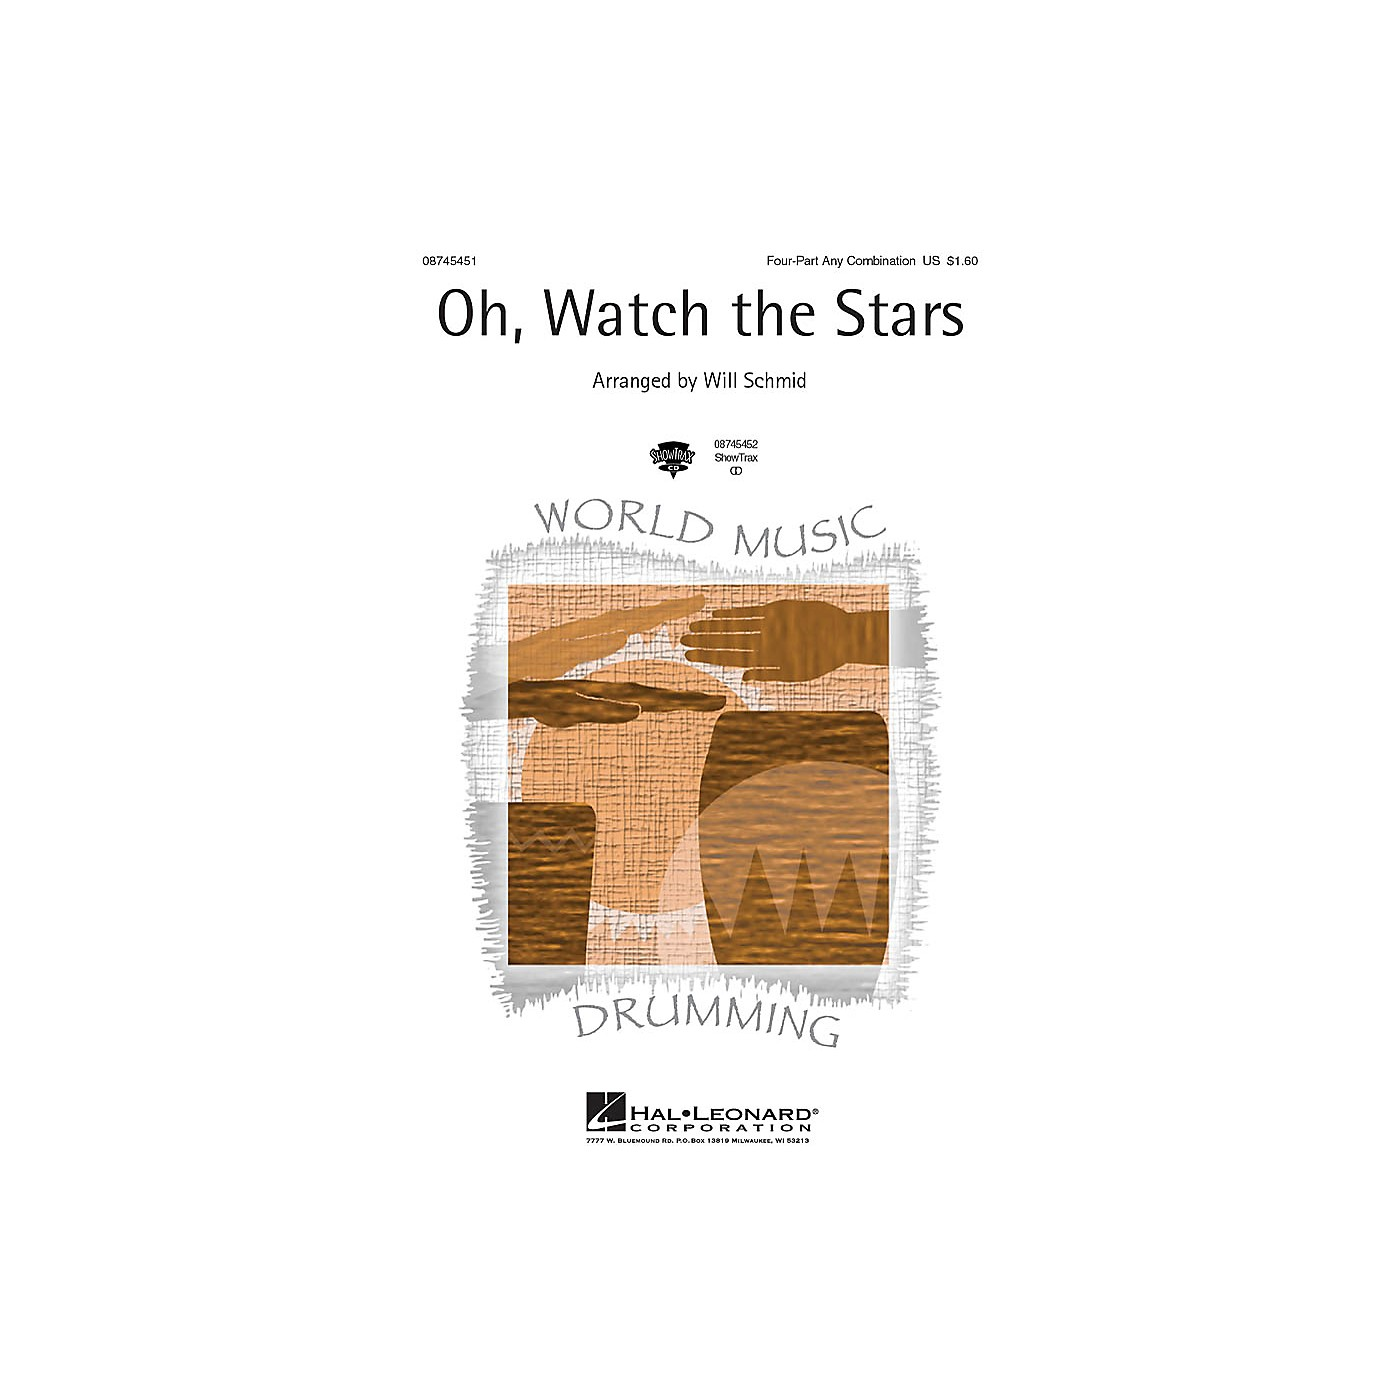 Hal Leonard Oh, Watch the Stars 4 Part Any Combination arranged by Will Schmid thumbnail